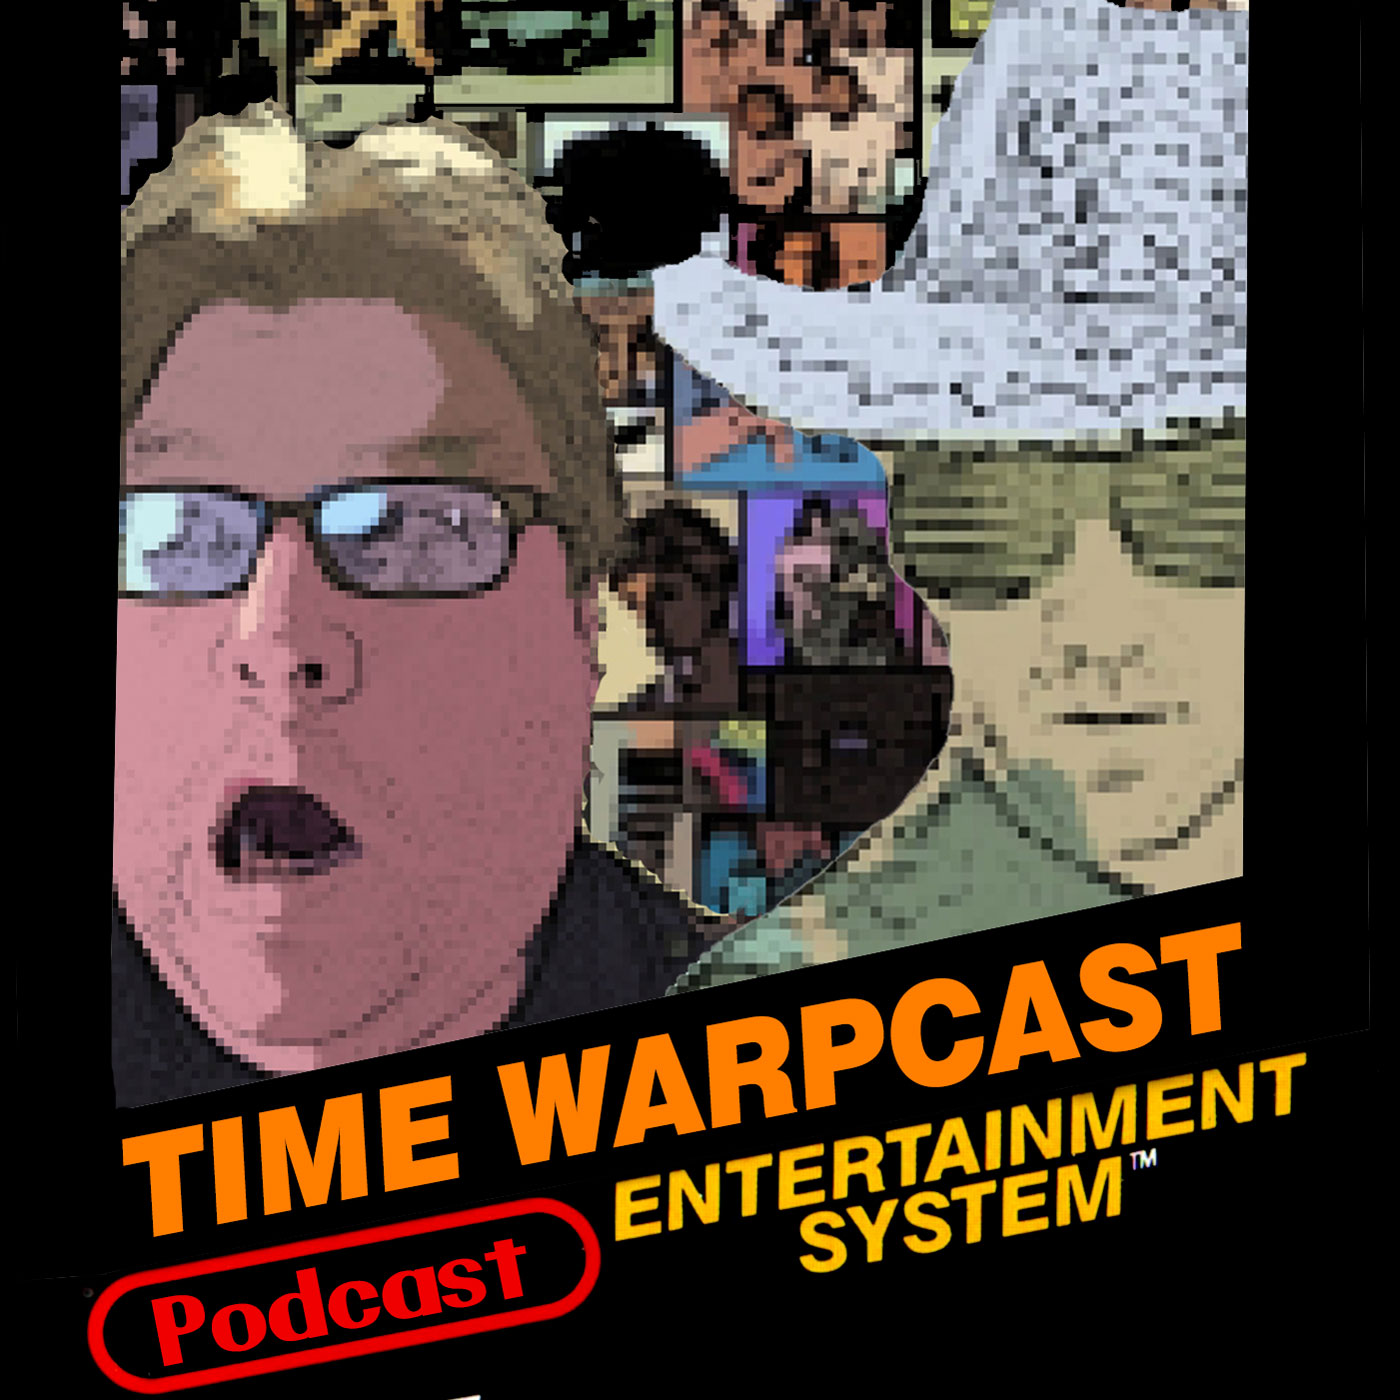 Time Warpcast